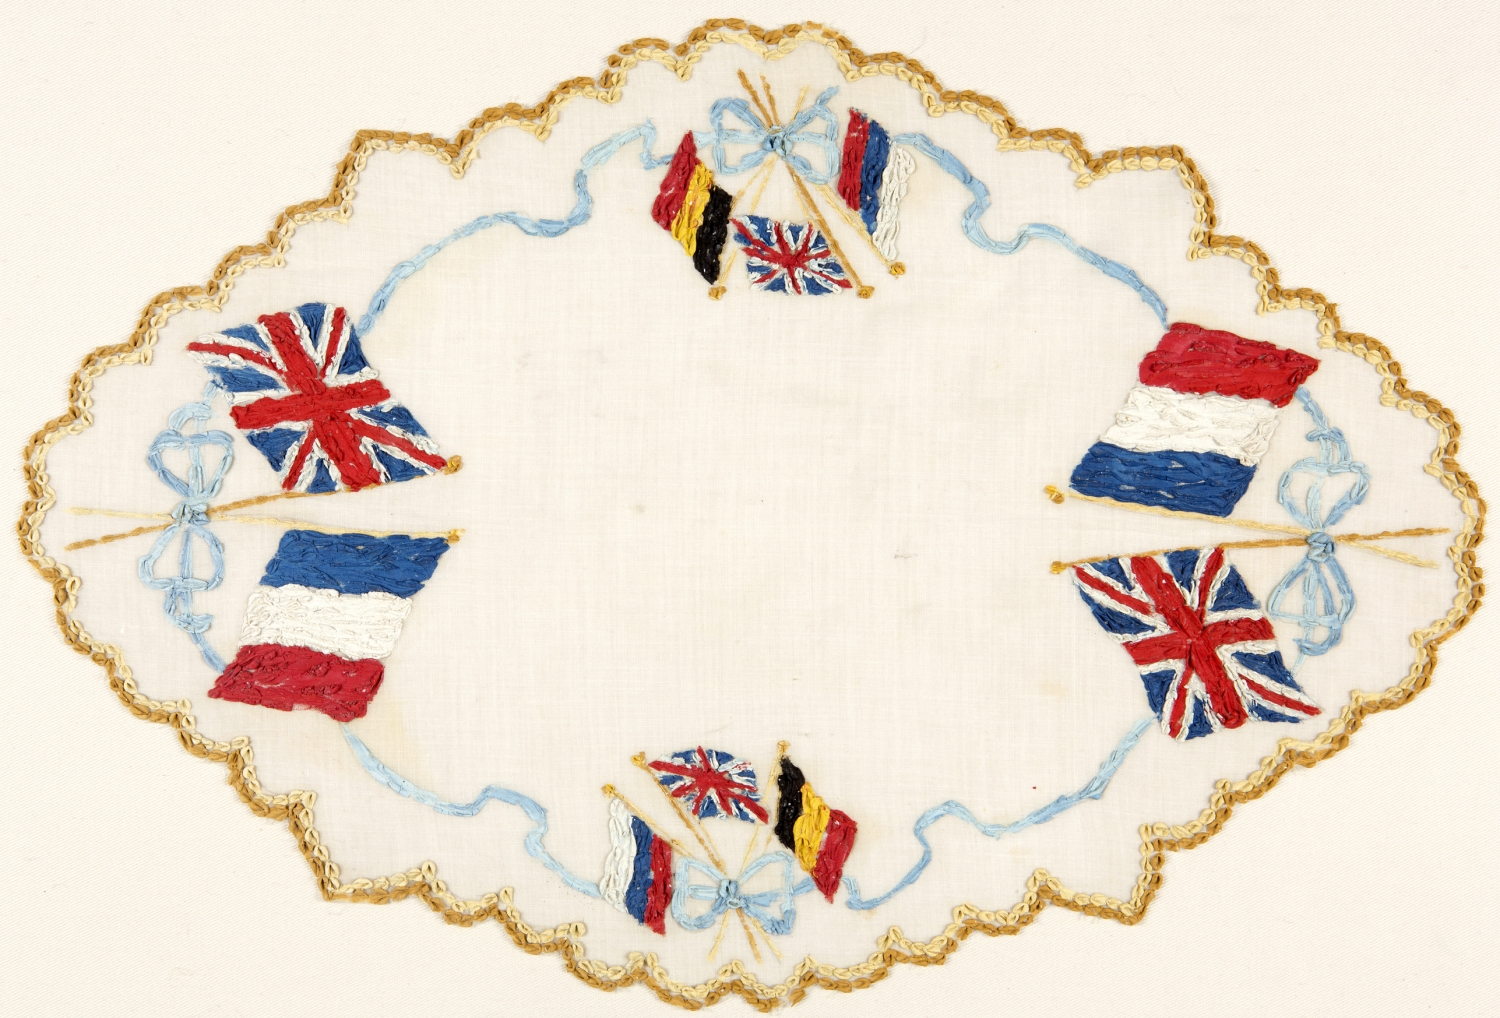 Cream doily with scalloped edge and hand painted with flag designs.